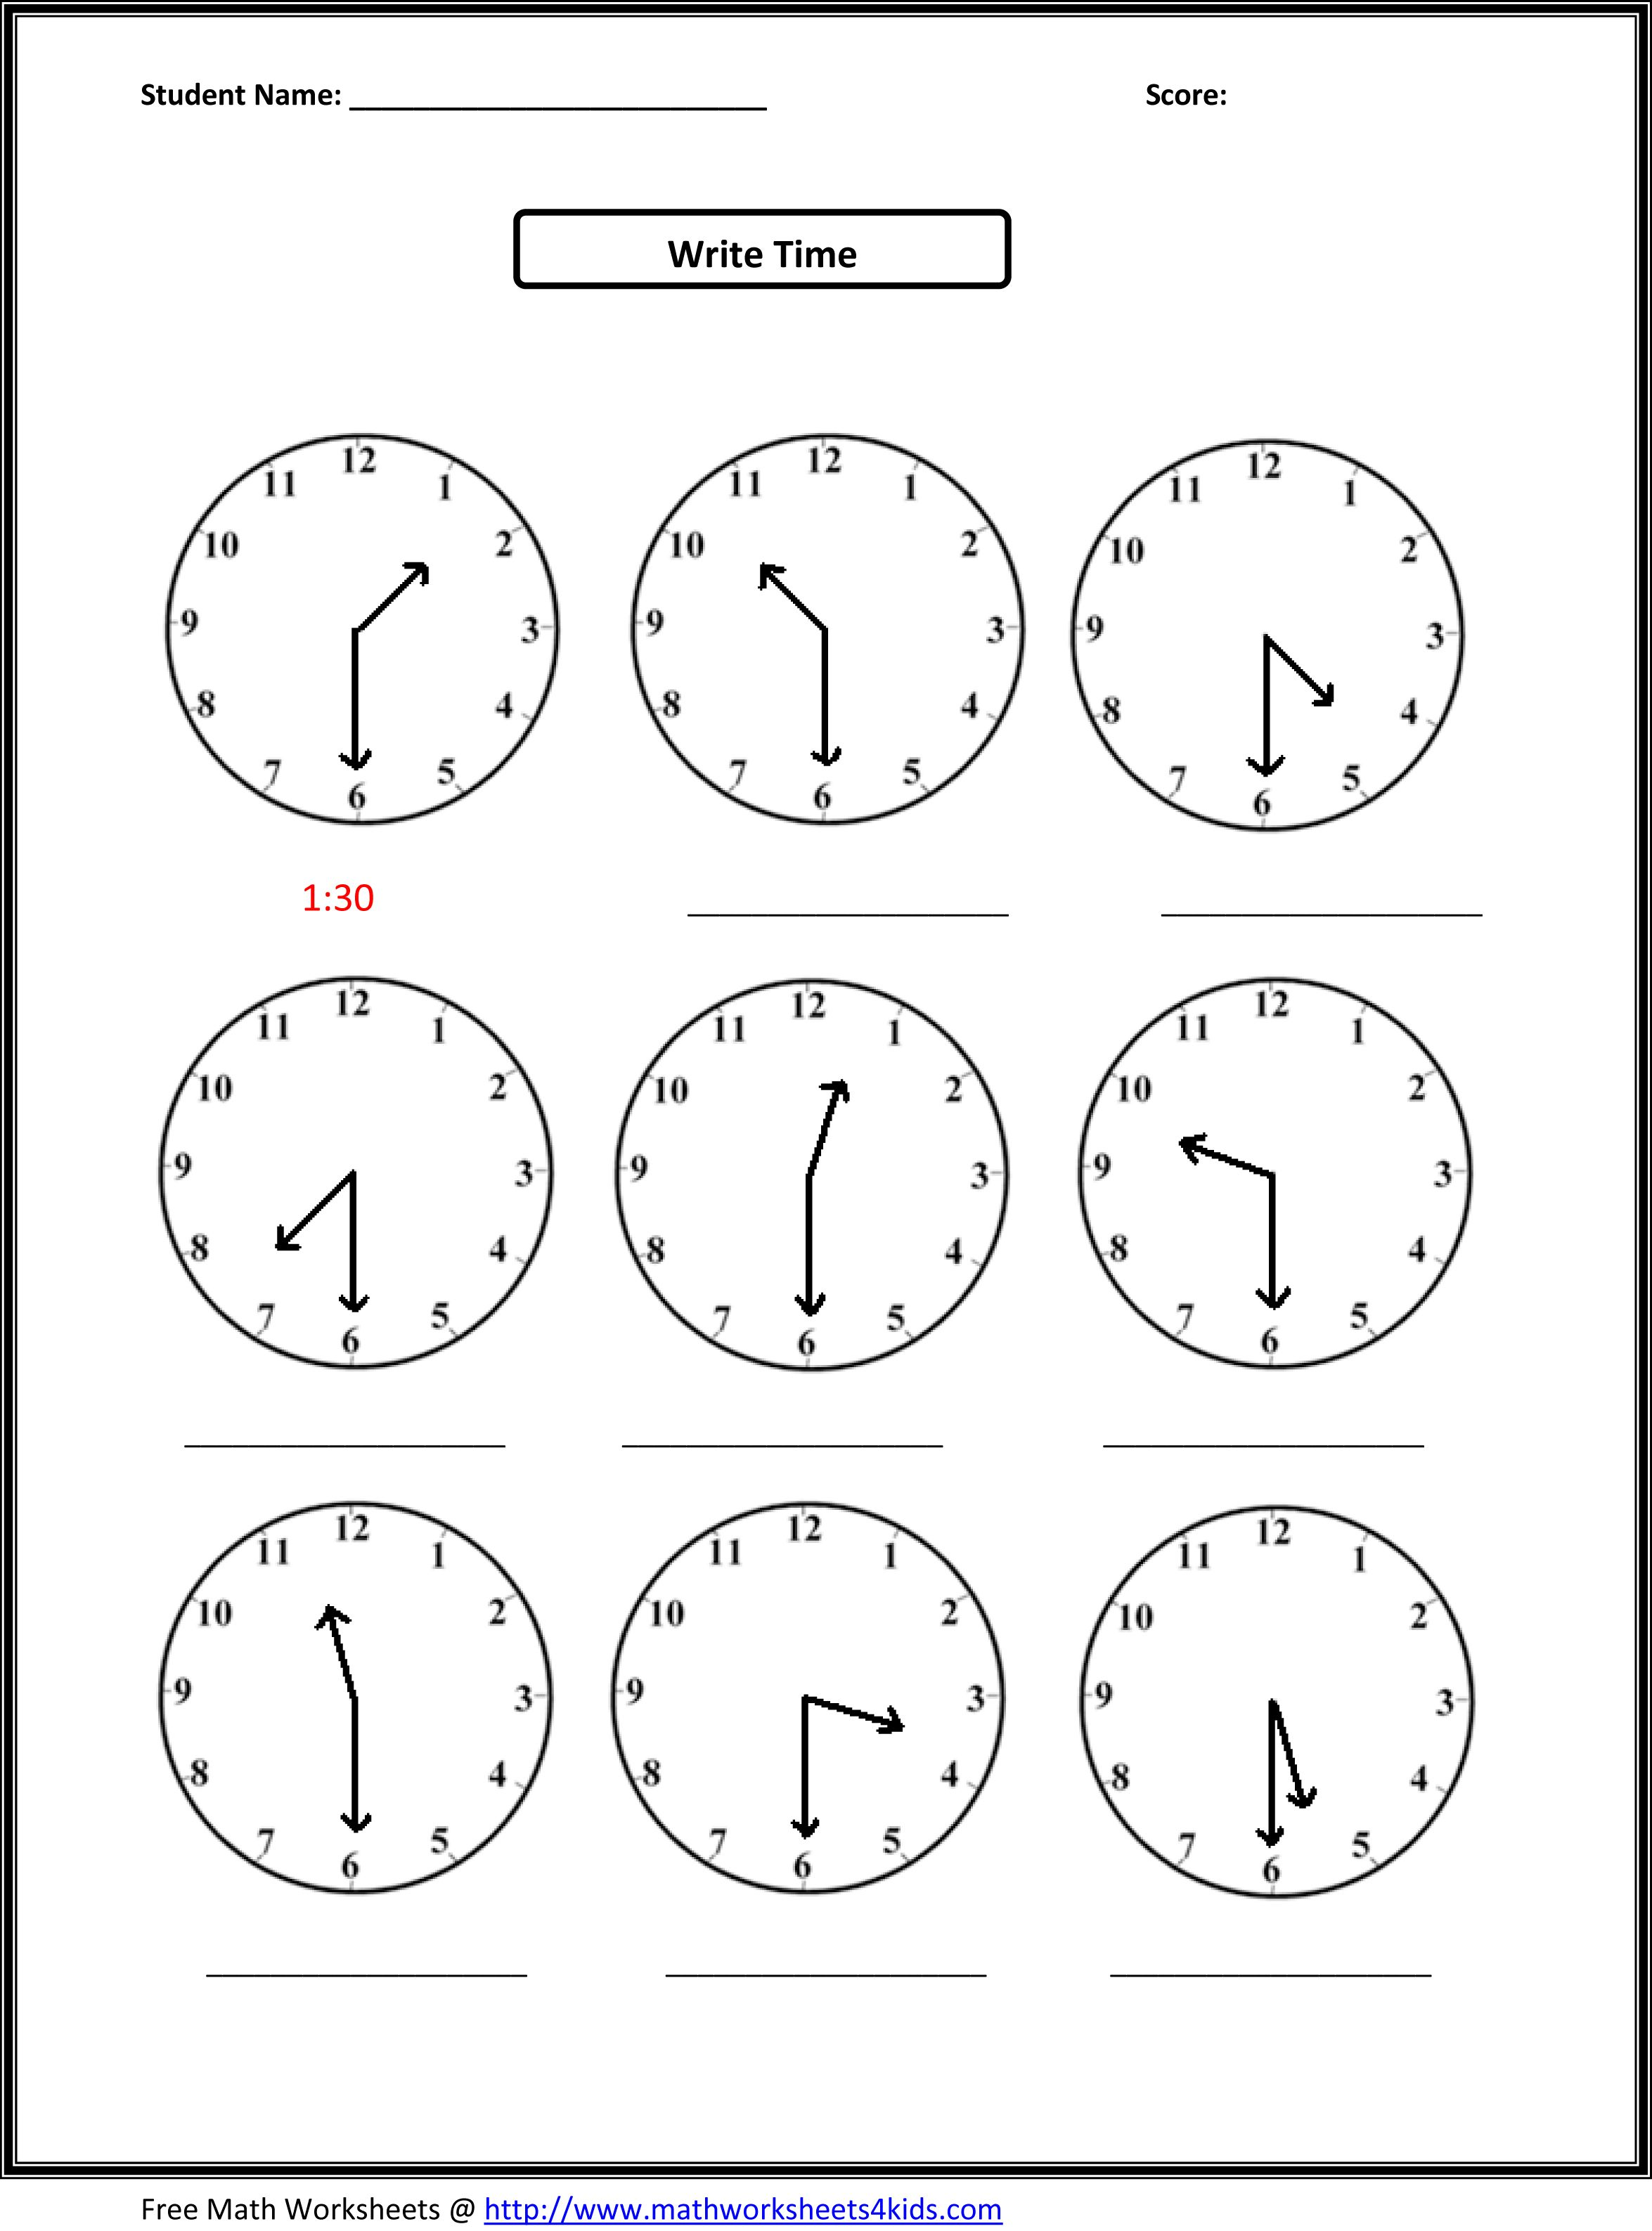 Weirdmailus  Sweet Worksheet On Time For Grade   Reocurent With Gorgeous Free Printable Telling Time Worksheets Nd Grade  Reocurent With Appealing Fire Prevention Worksheets Also Molar Mass Problems Worksheet In Addition Functions Worksheet Kuta And Multiplication Worksheets For Third Grade As Well As Capitalization Worksheets St Grade Additionally Th Grade Reading Comprehension Worksheets Printable From Reocurentcom With Weirdmailus  Gorgeous Worksheet On Time For Grade   Reocurent With Appealing Free Printable Telling Time Worksheets Nd Grade  Reocurent And Sweet Fire Prevention Worksheets Also Molar Mass Problems Worksheet In Addition Functions Worksheet Kuta From Reocurentcom